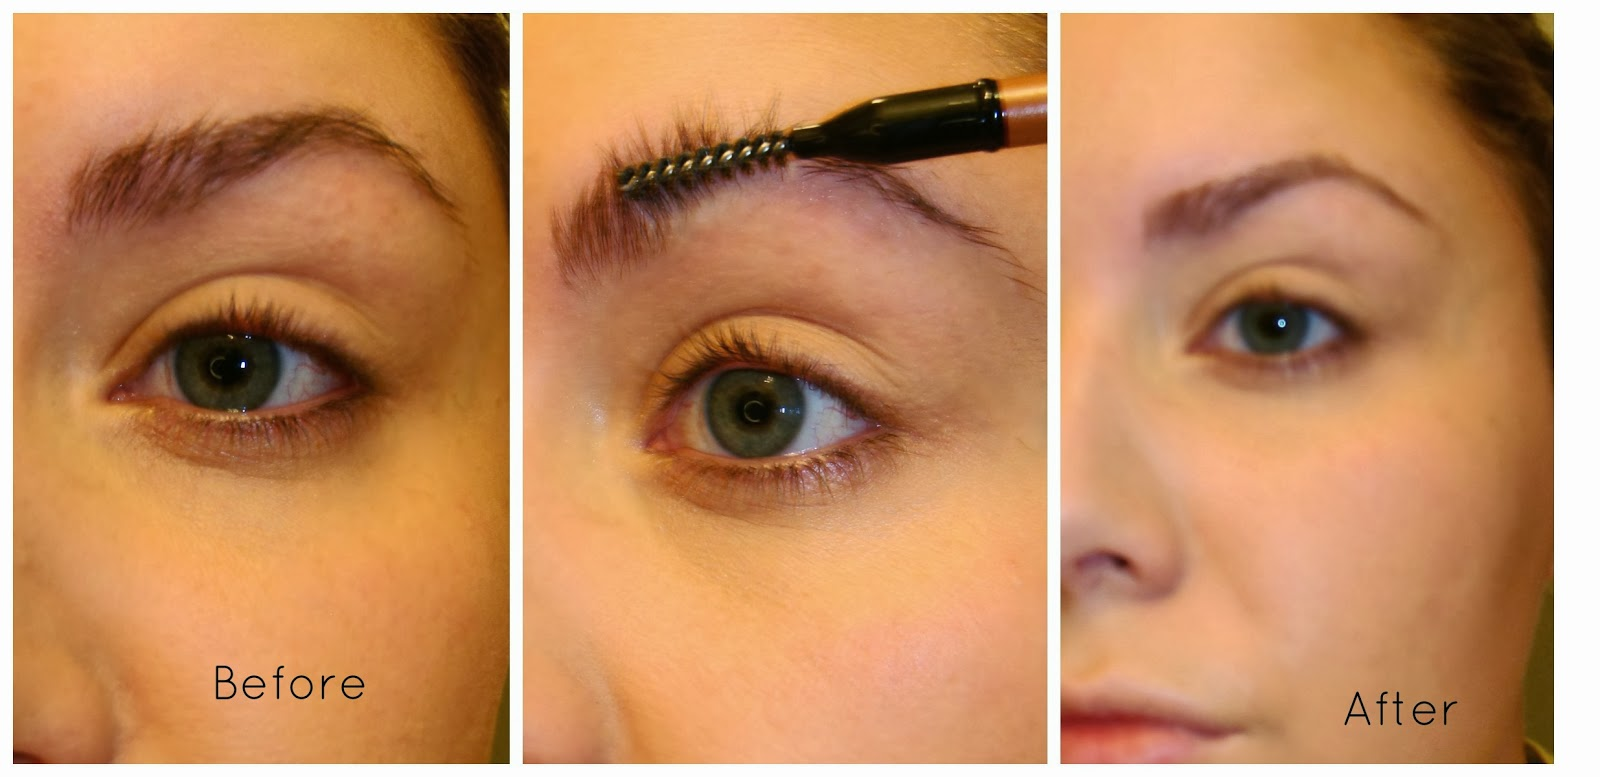 Life And Beauty How To Trim Your Eyebrows The Easy Way